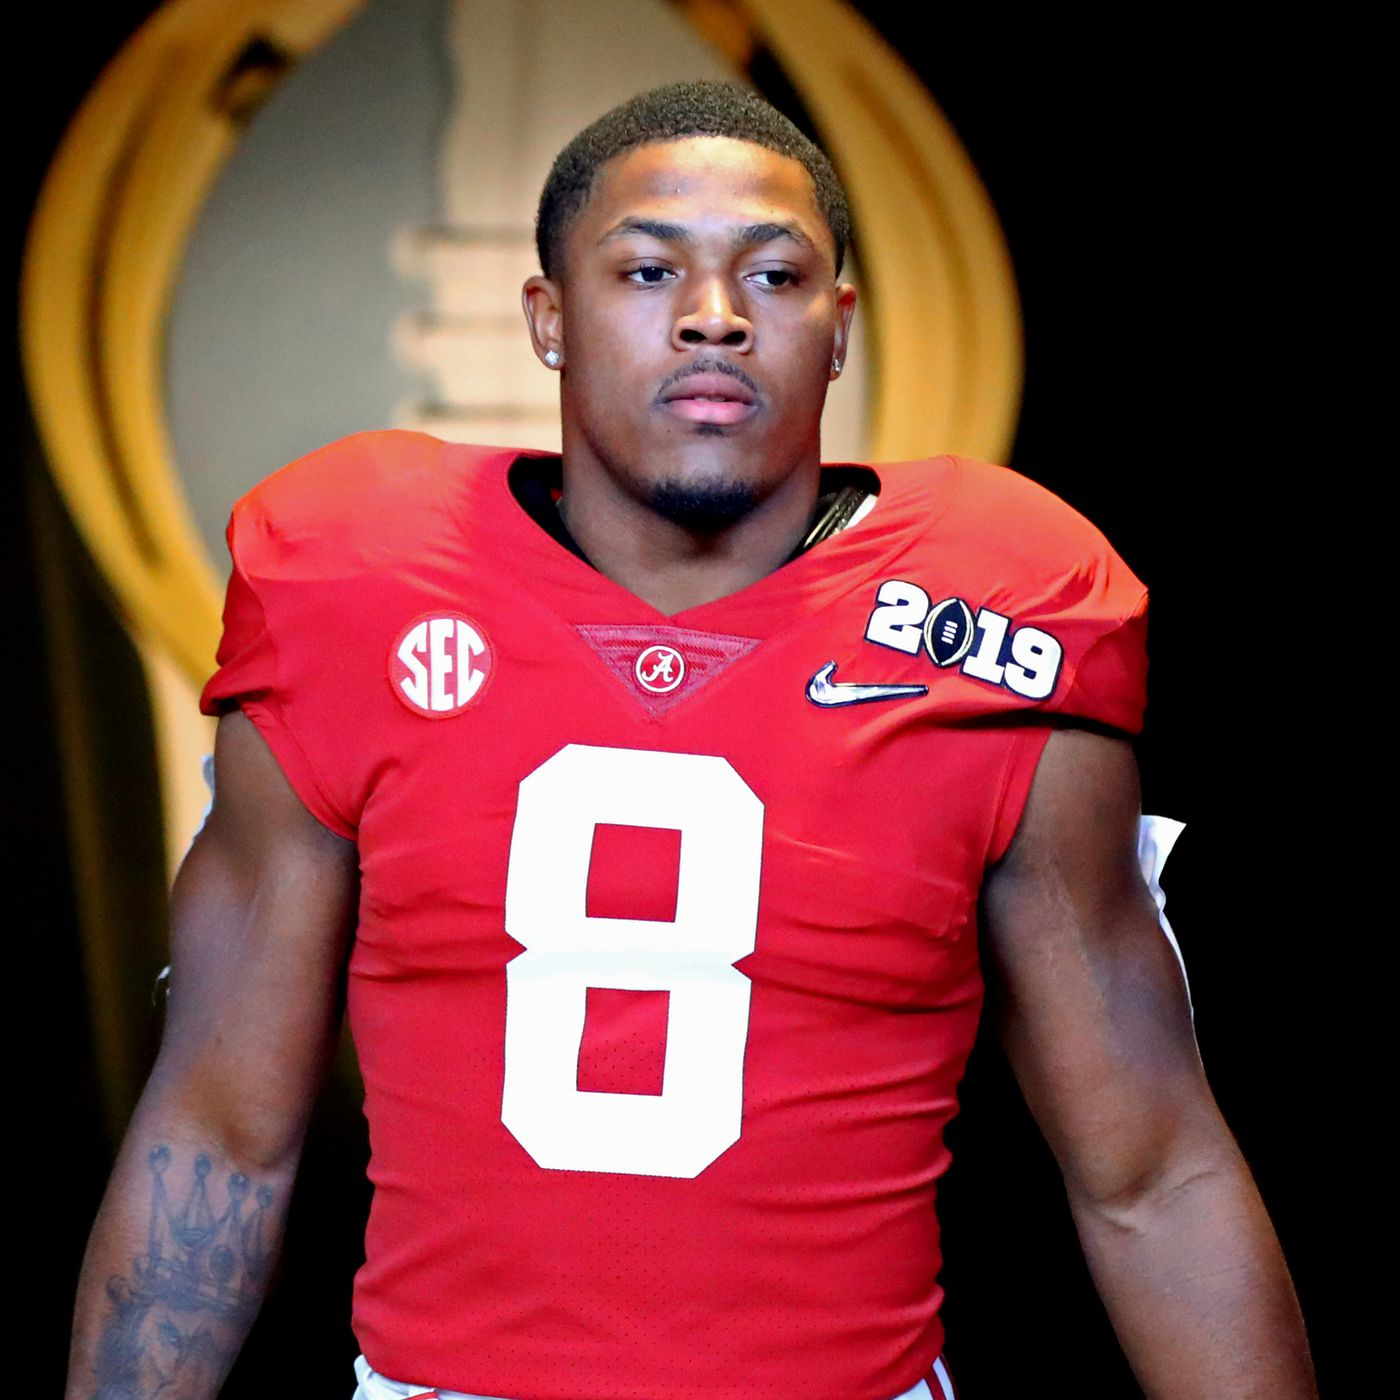 2019 Nfl Mock Draft Oakland Raiders Select Rb Josh Jacobs At No 27 Dawgs By Nature